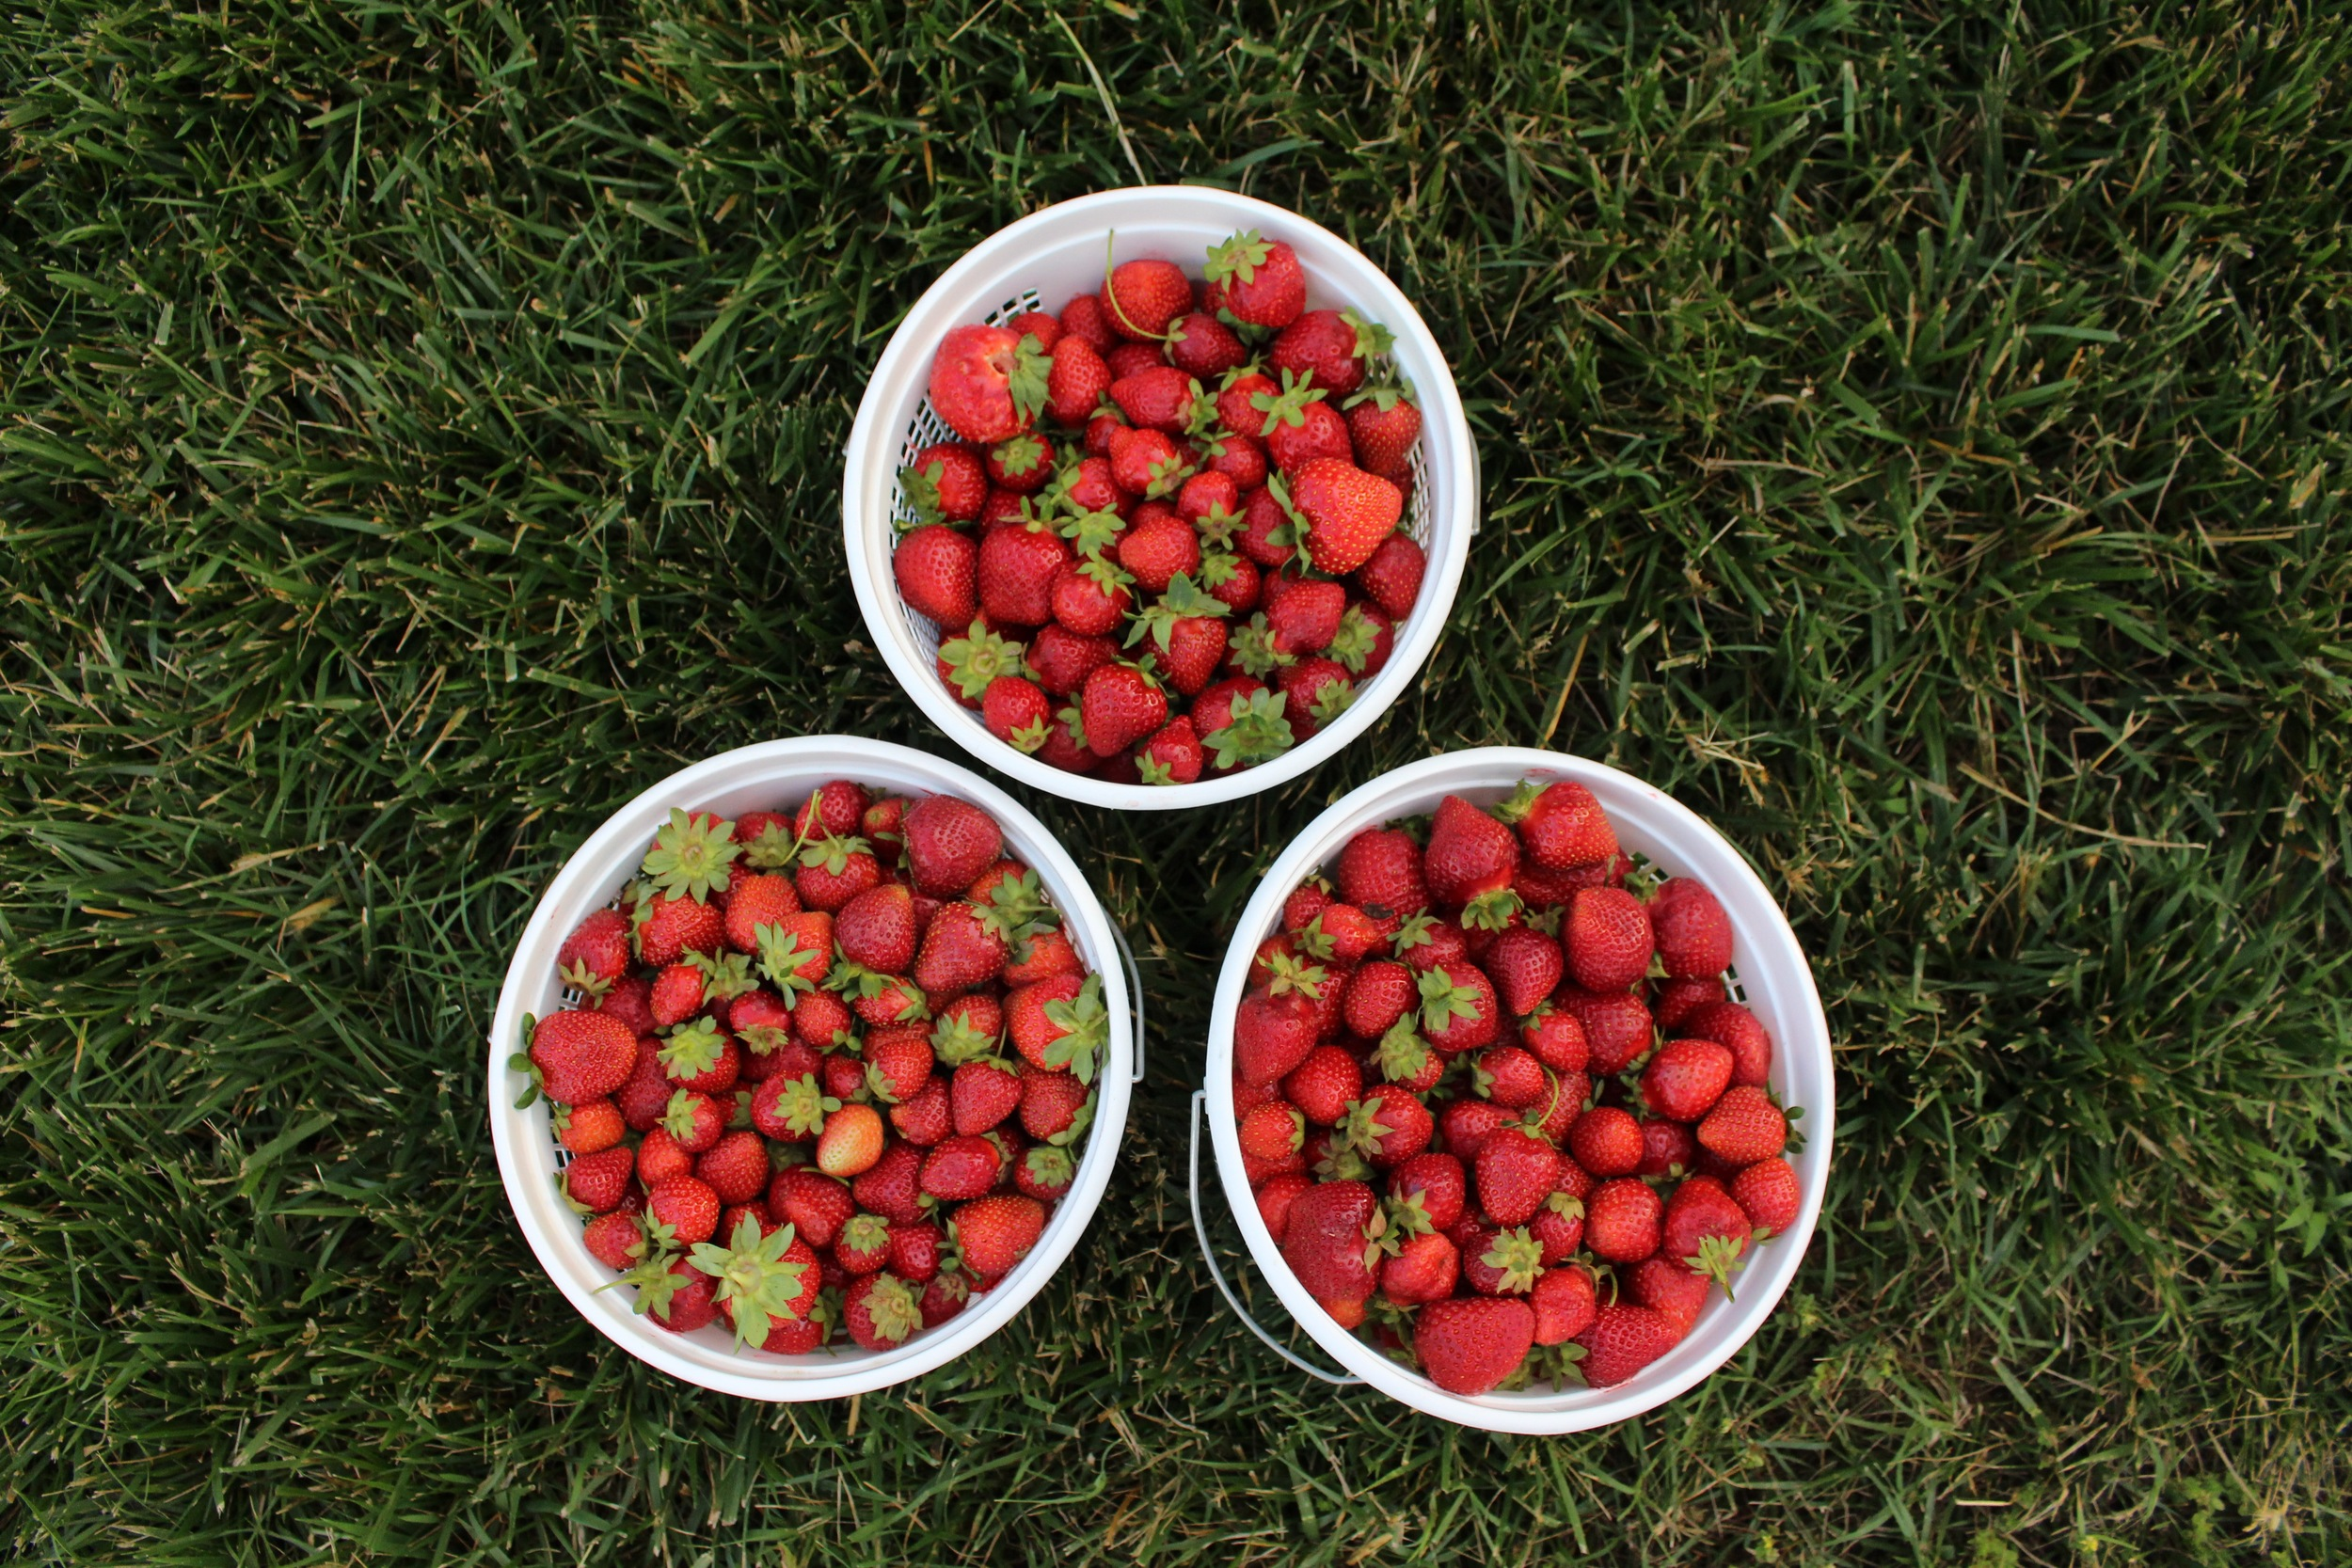 All of It - BUCKETS OF HAND PICKED STRAWBS